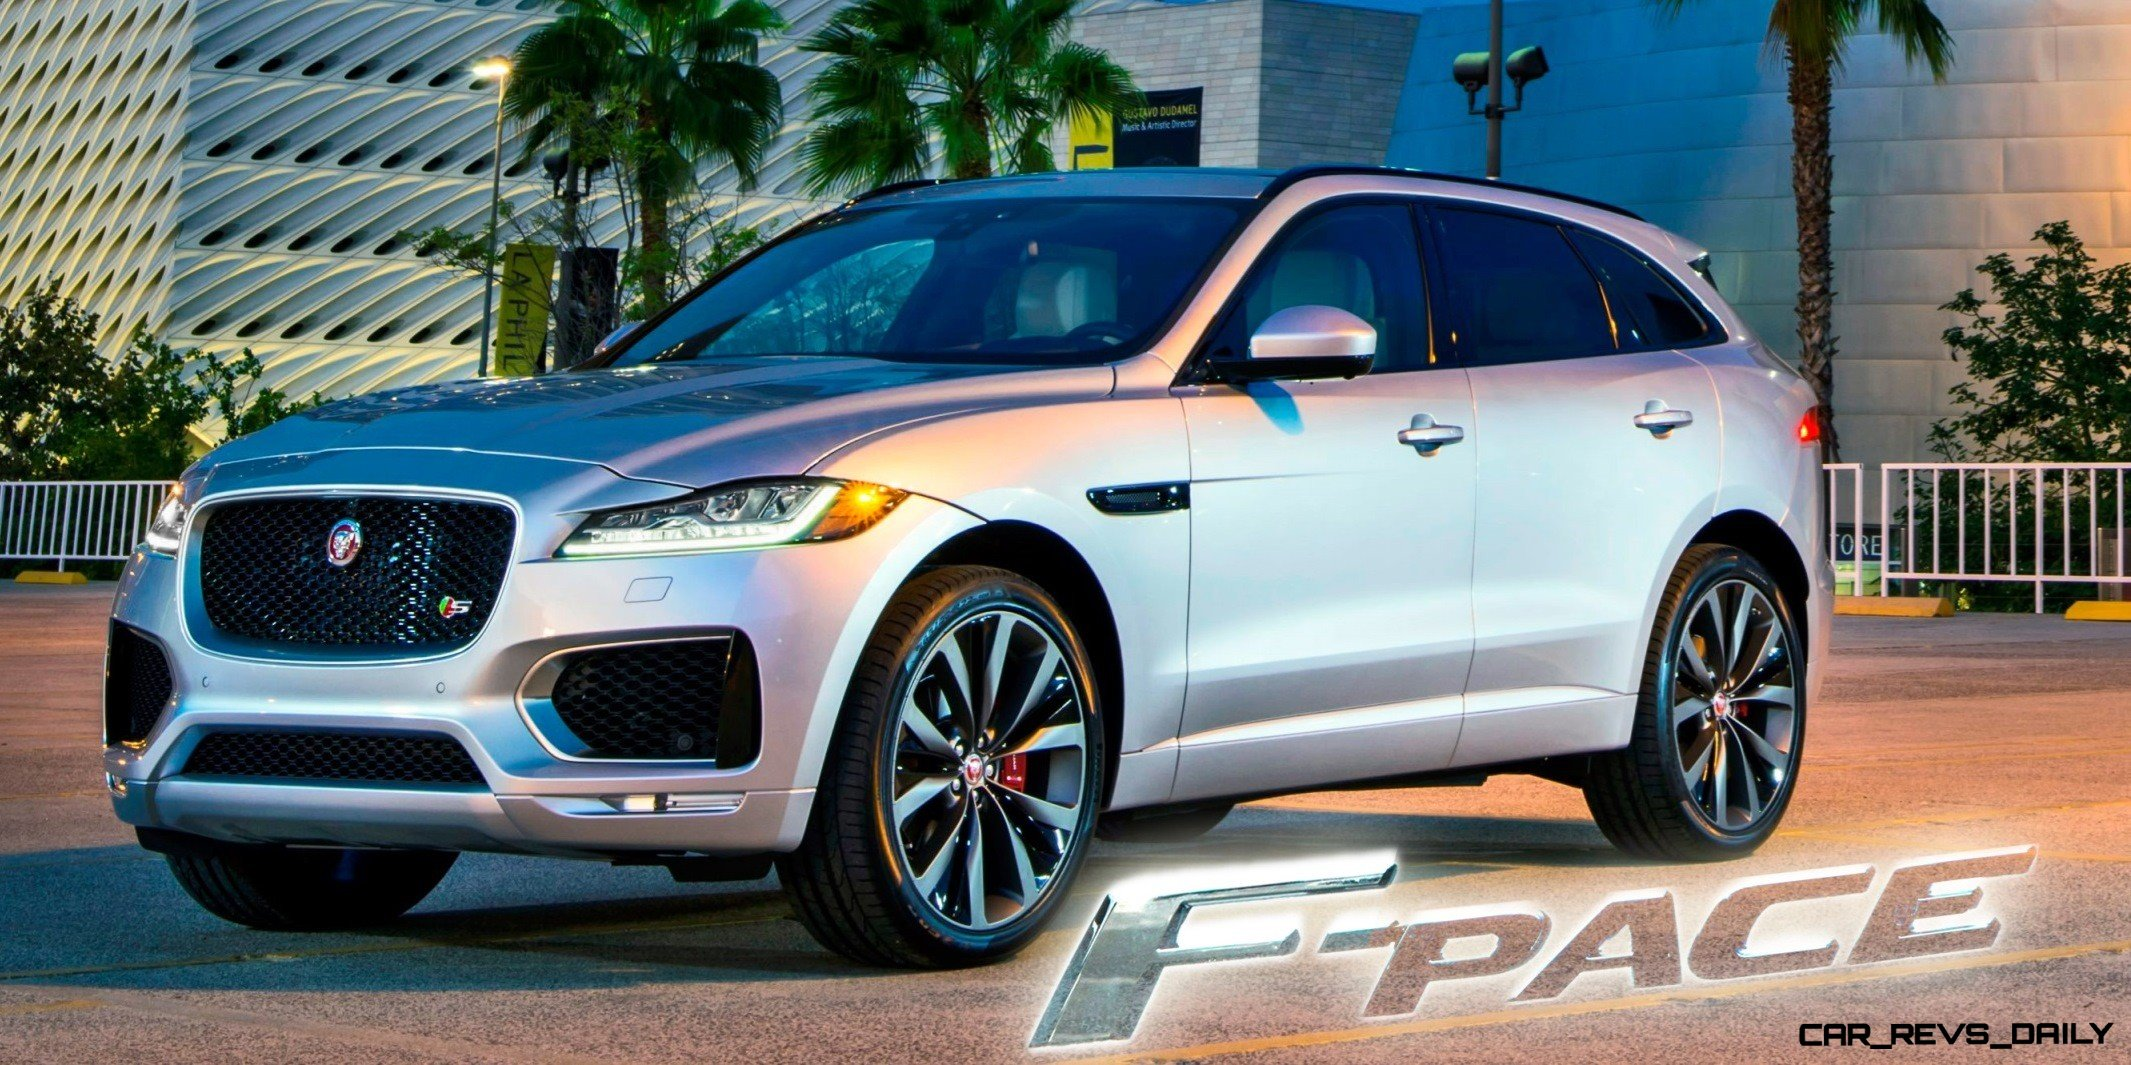 5 1s 2017 Jaguar F Pace Suv Usa Photos Colors Wheels Visualizer And Pricing From 42k